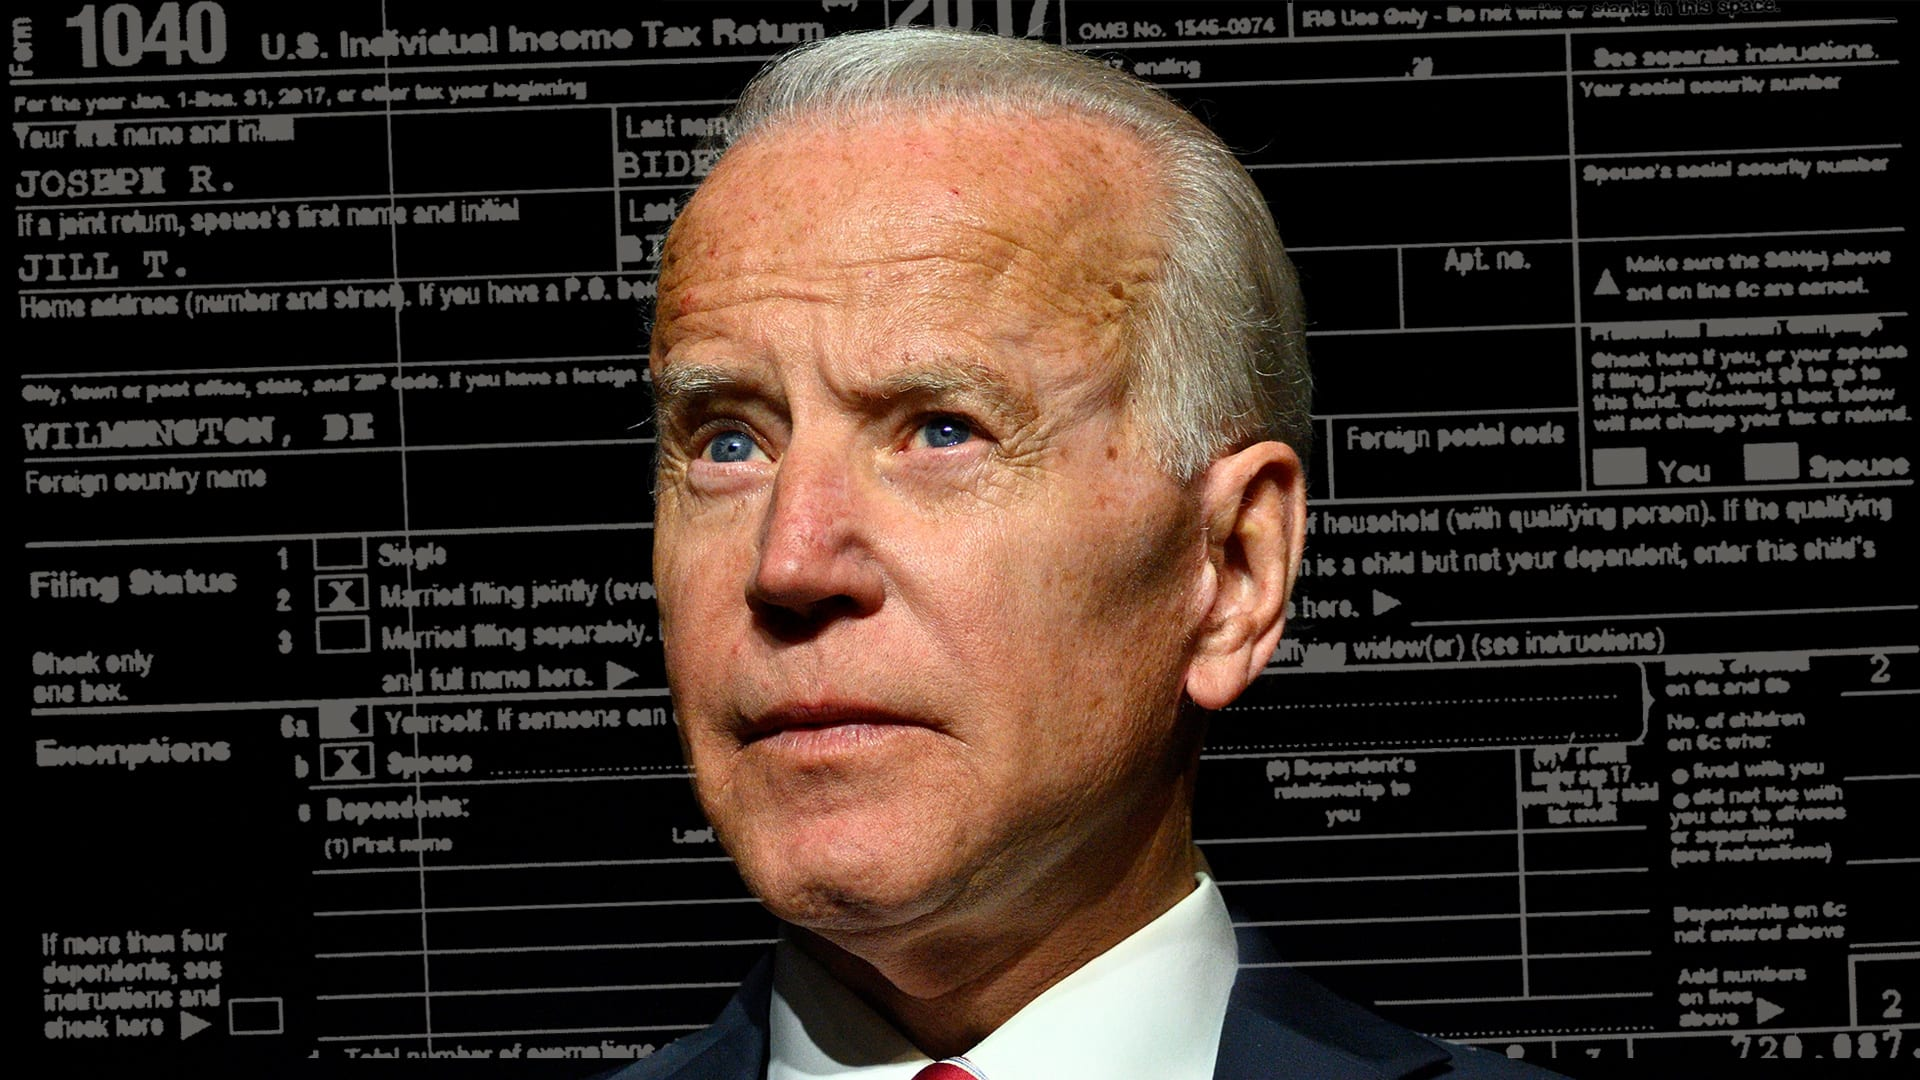 Joe Biden will return to Wall Street for fundraisers after climate town hall